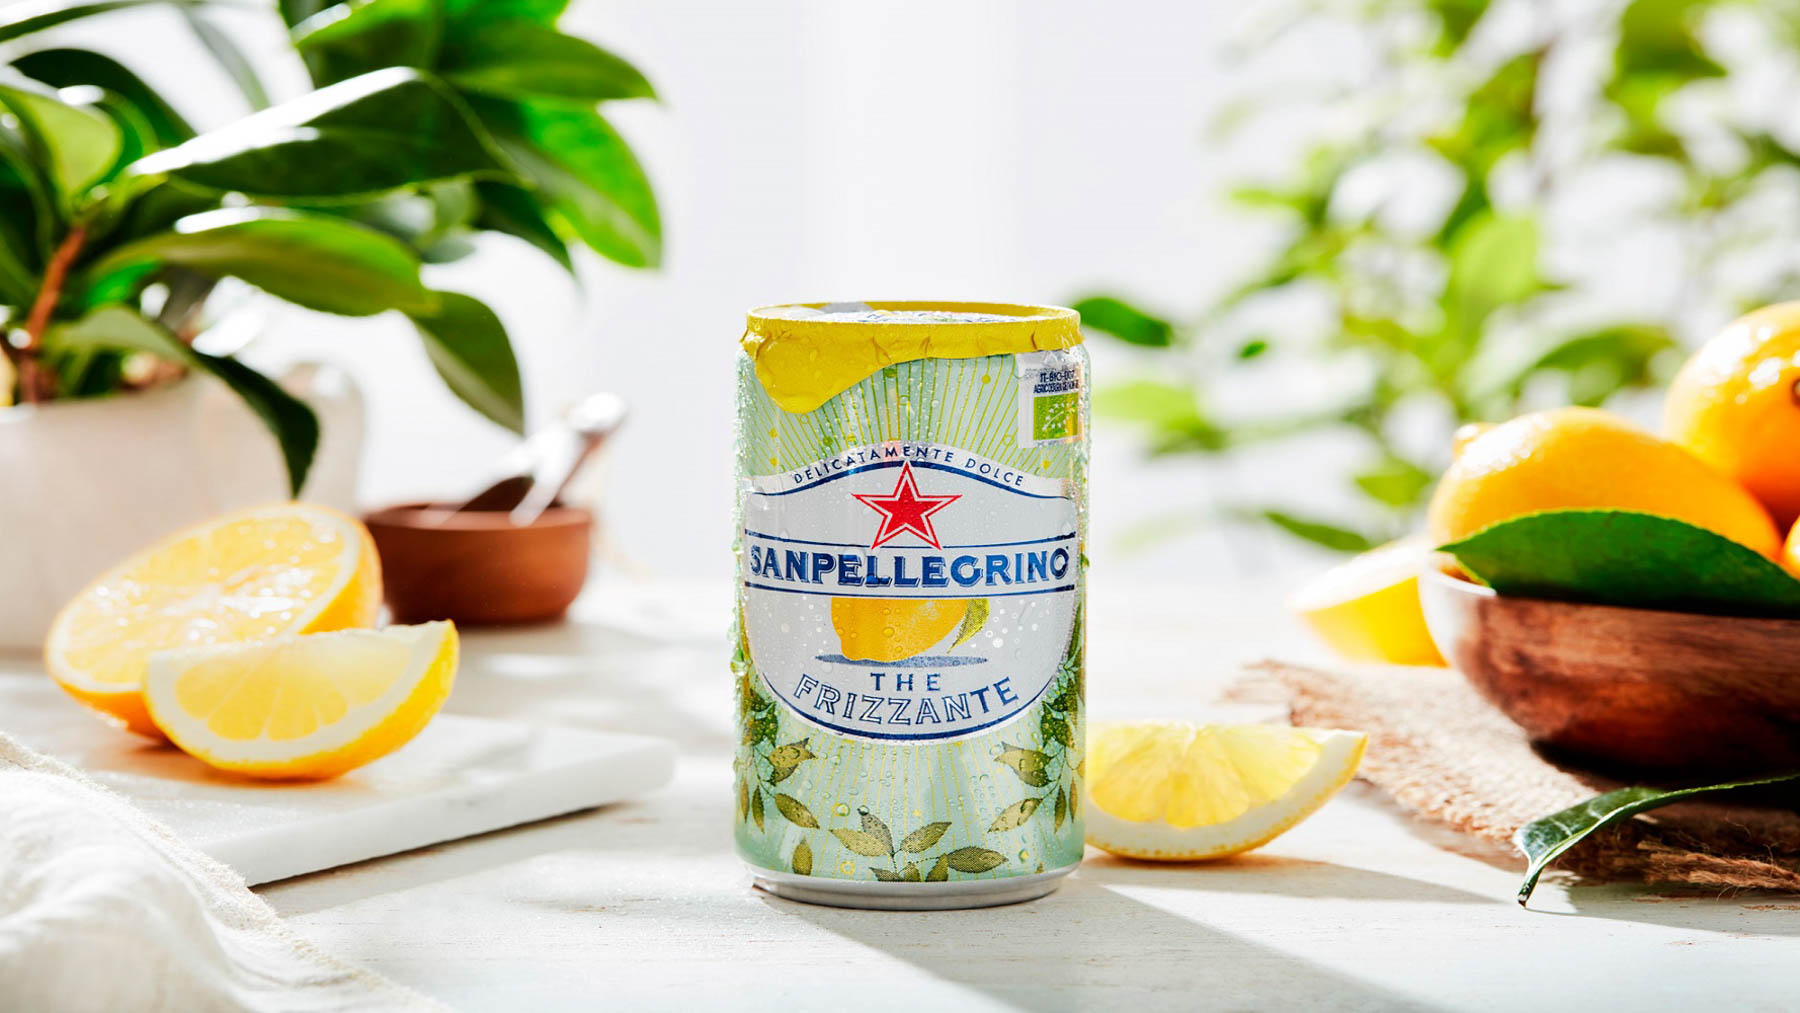 cold can of Pellegrino surrounded by fresh fruit